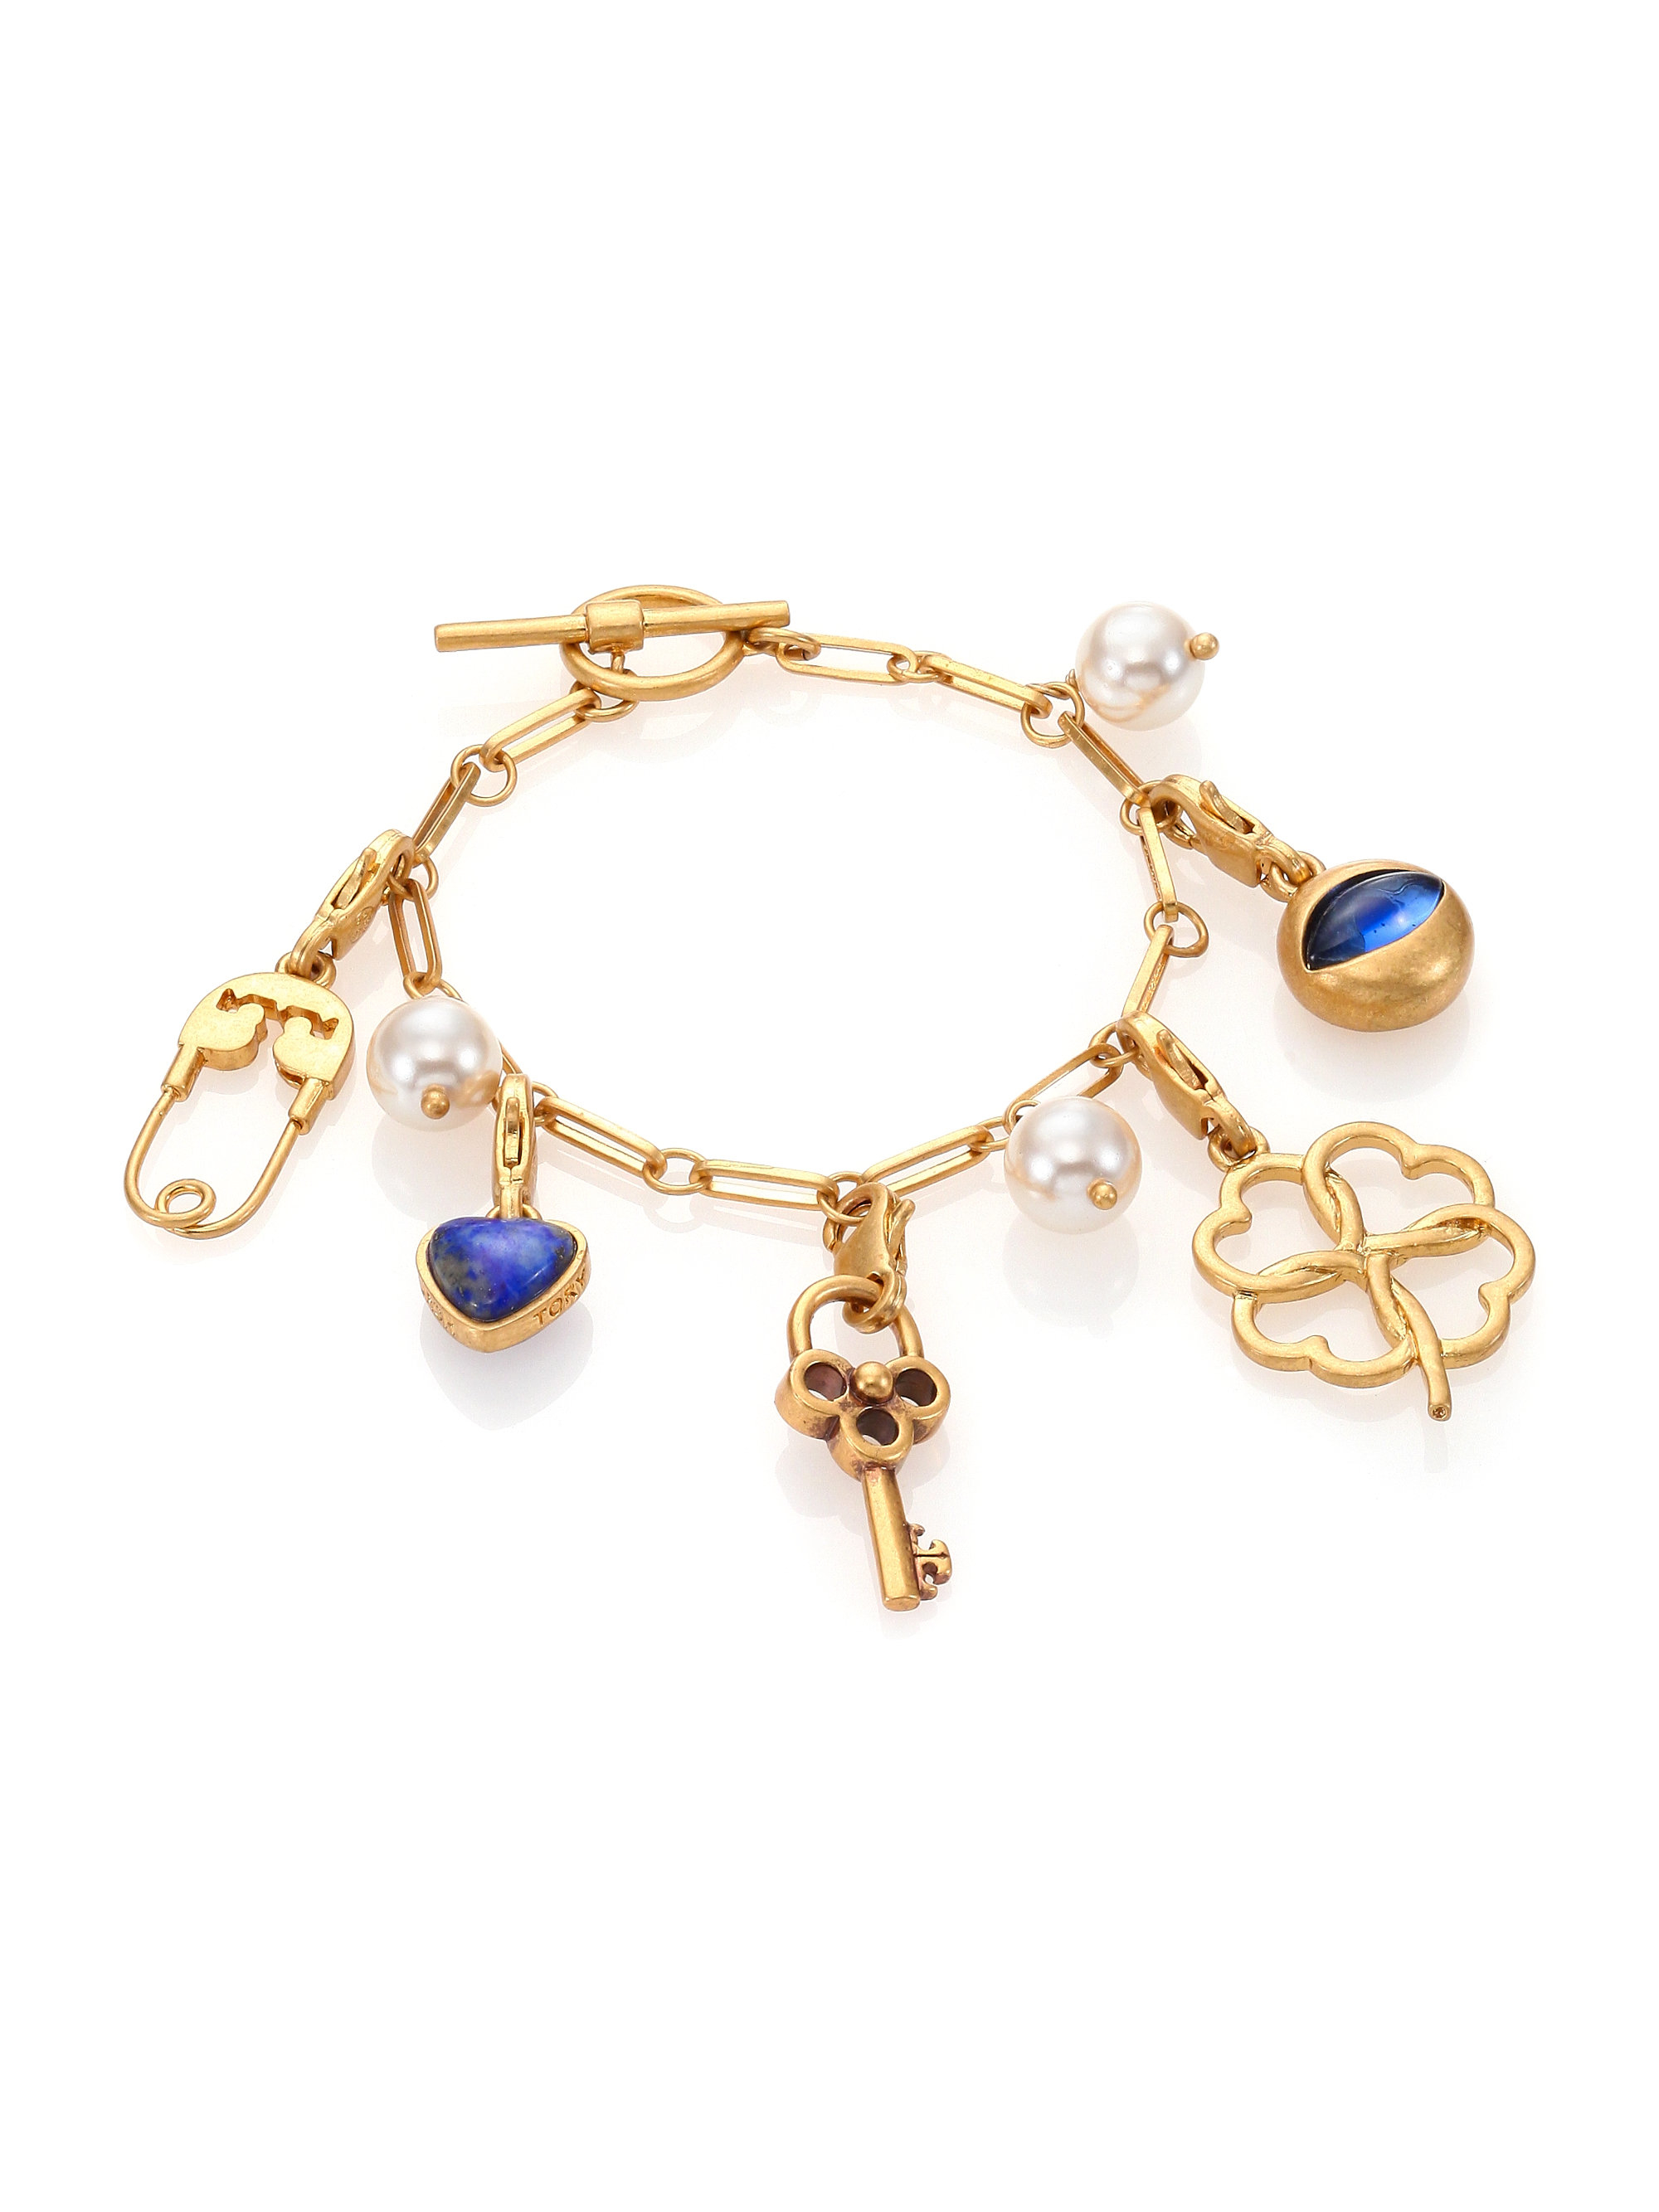 evil miyuki bangles bracelet bangle charm rose zirconia pin hamsa adjustable bracelets gold eye